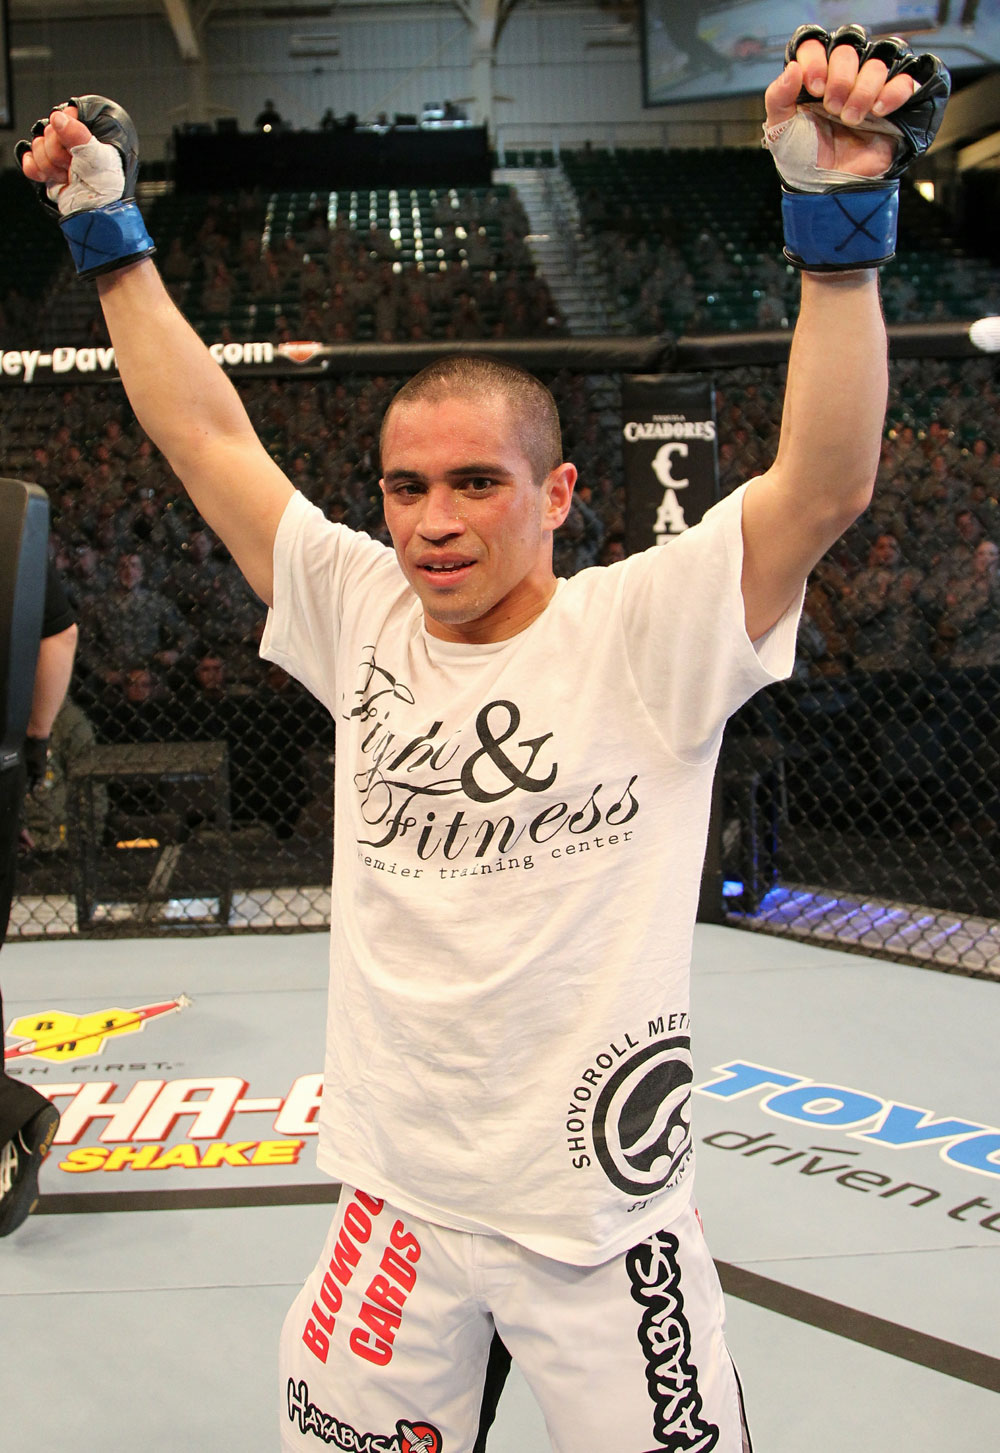 Cariaso celebrates his win over Campuzano.